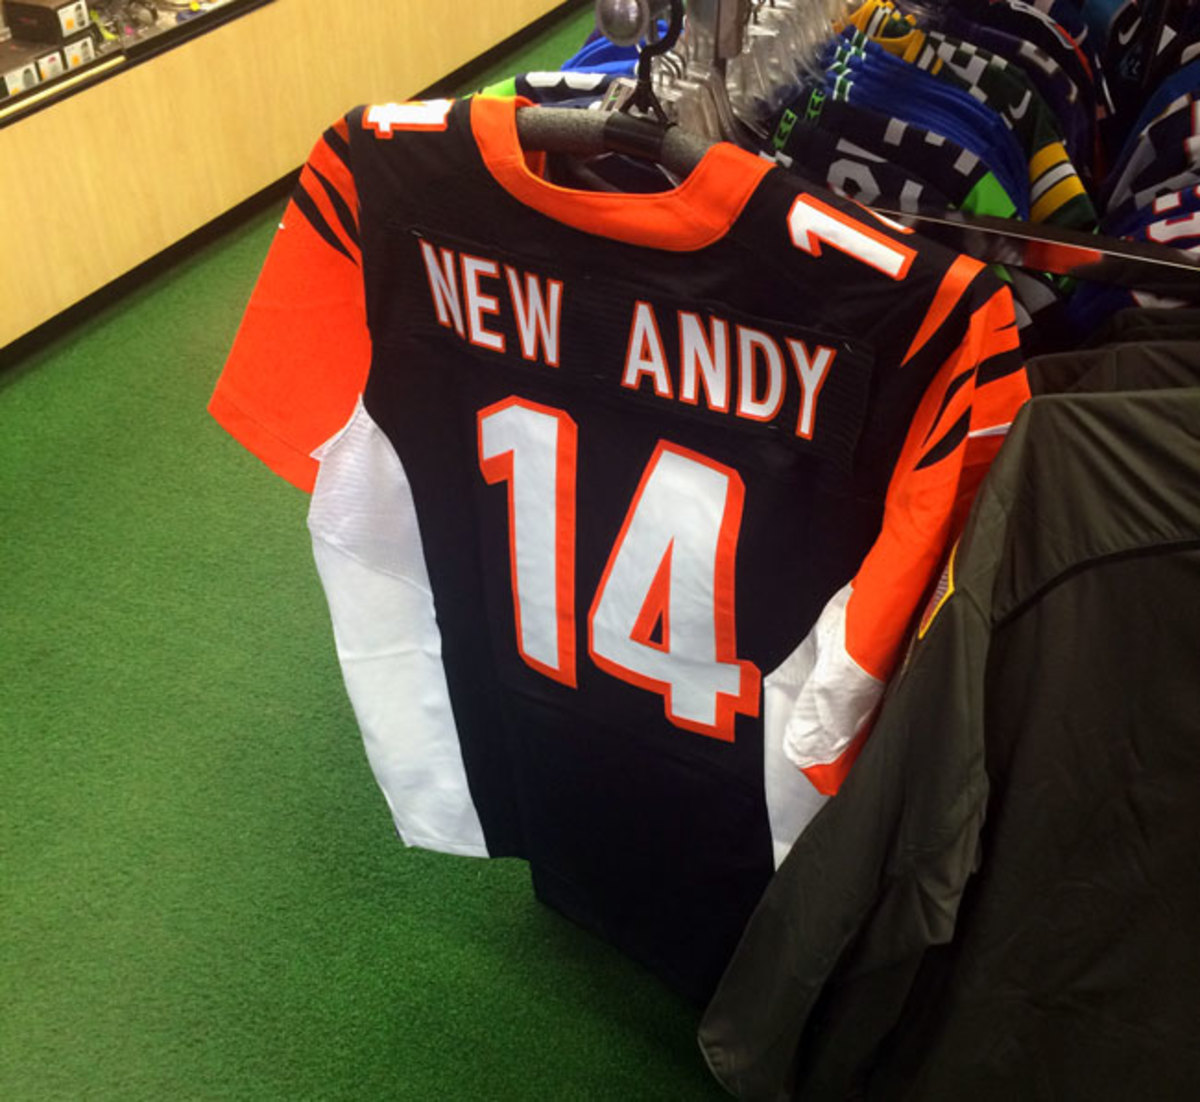 The New Andy jersey inside Koch Sporting Goods.